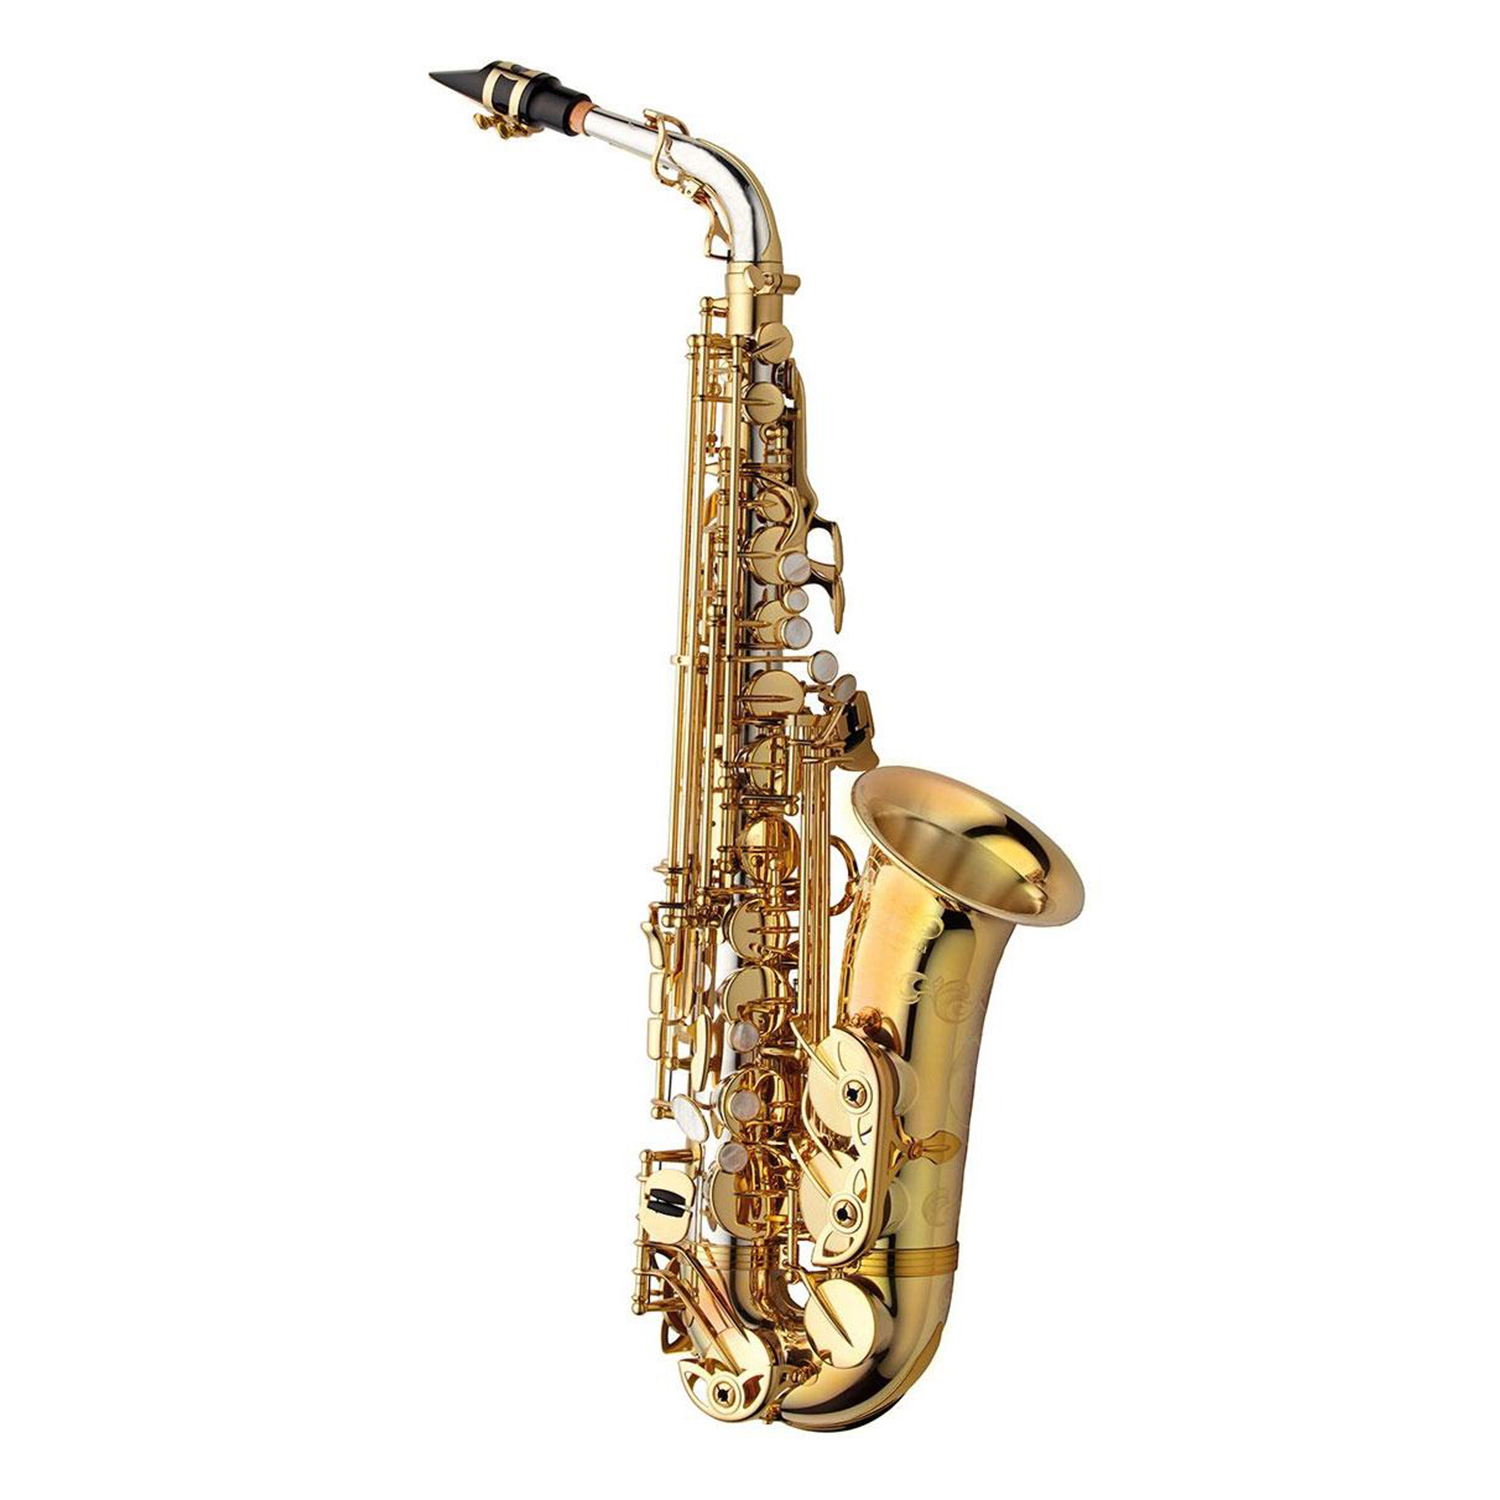 Yanagisawa WO Series Elite Alto Saxophone - Sterling Silver Body and Neck